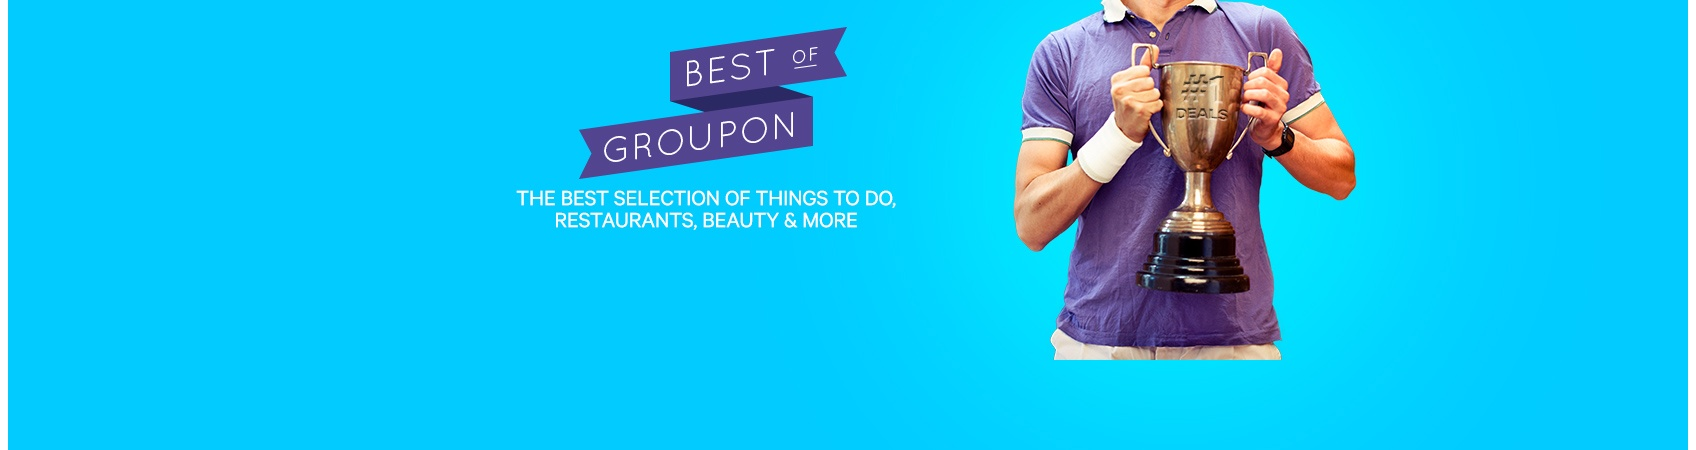 Best Of Groupon Groupon